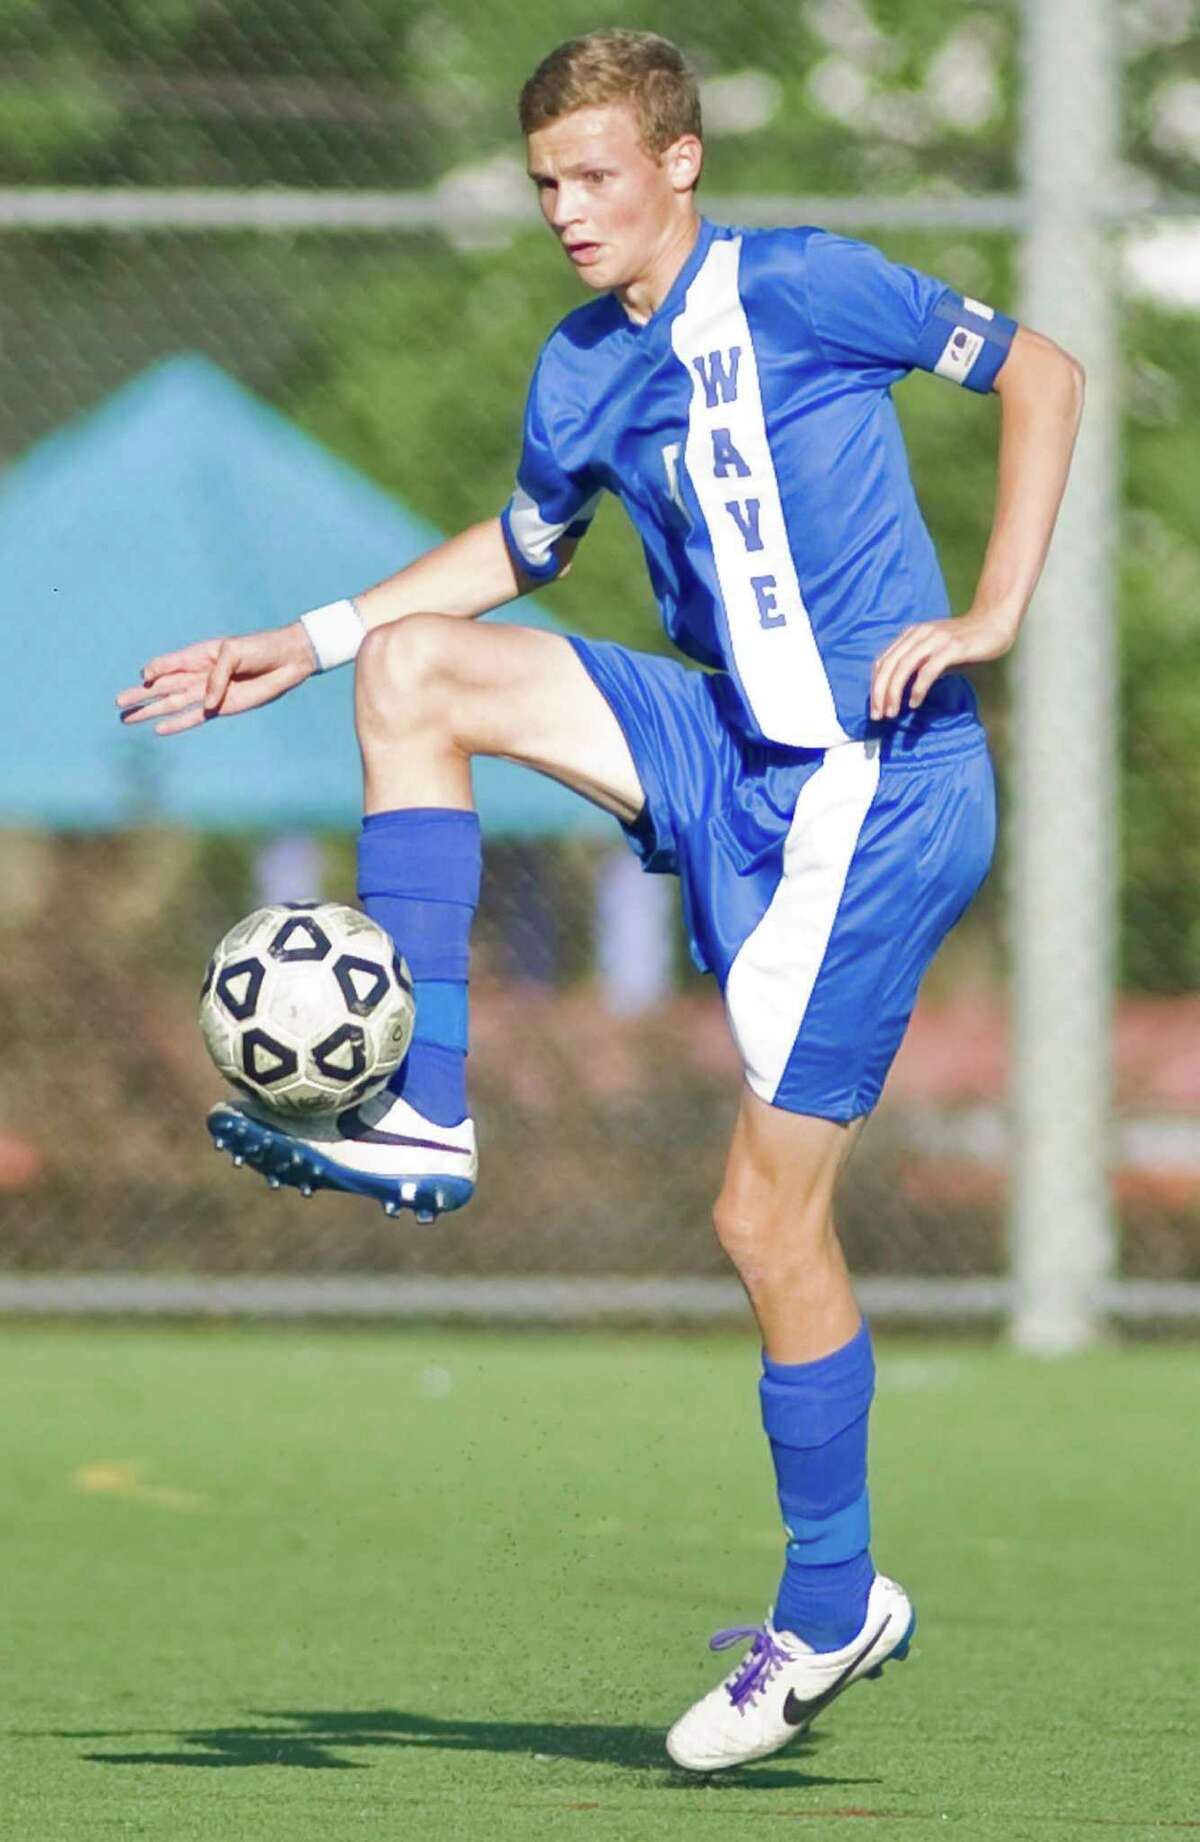 Darien High School's John Mackie catches the ball during a game against Stamford High School, played at Stamford. Monday, Oct. 6, 2014